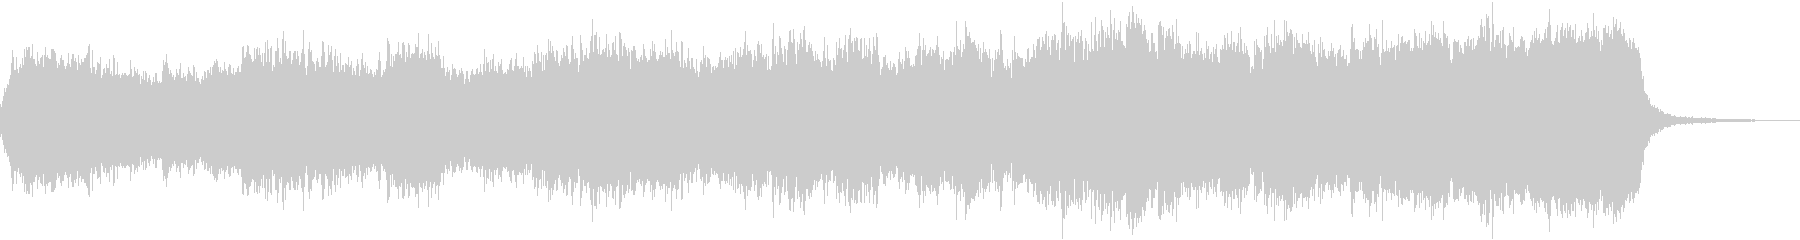 Mysterious, mysterious and fantastic dungeon BGM's unreproduced waveform